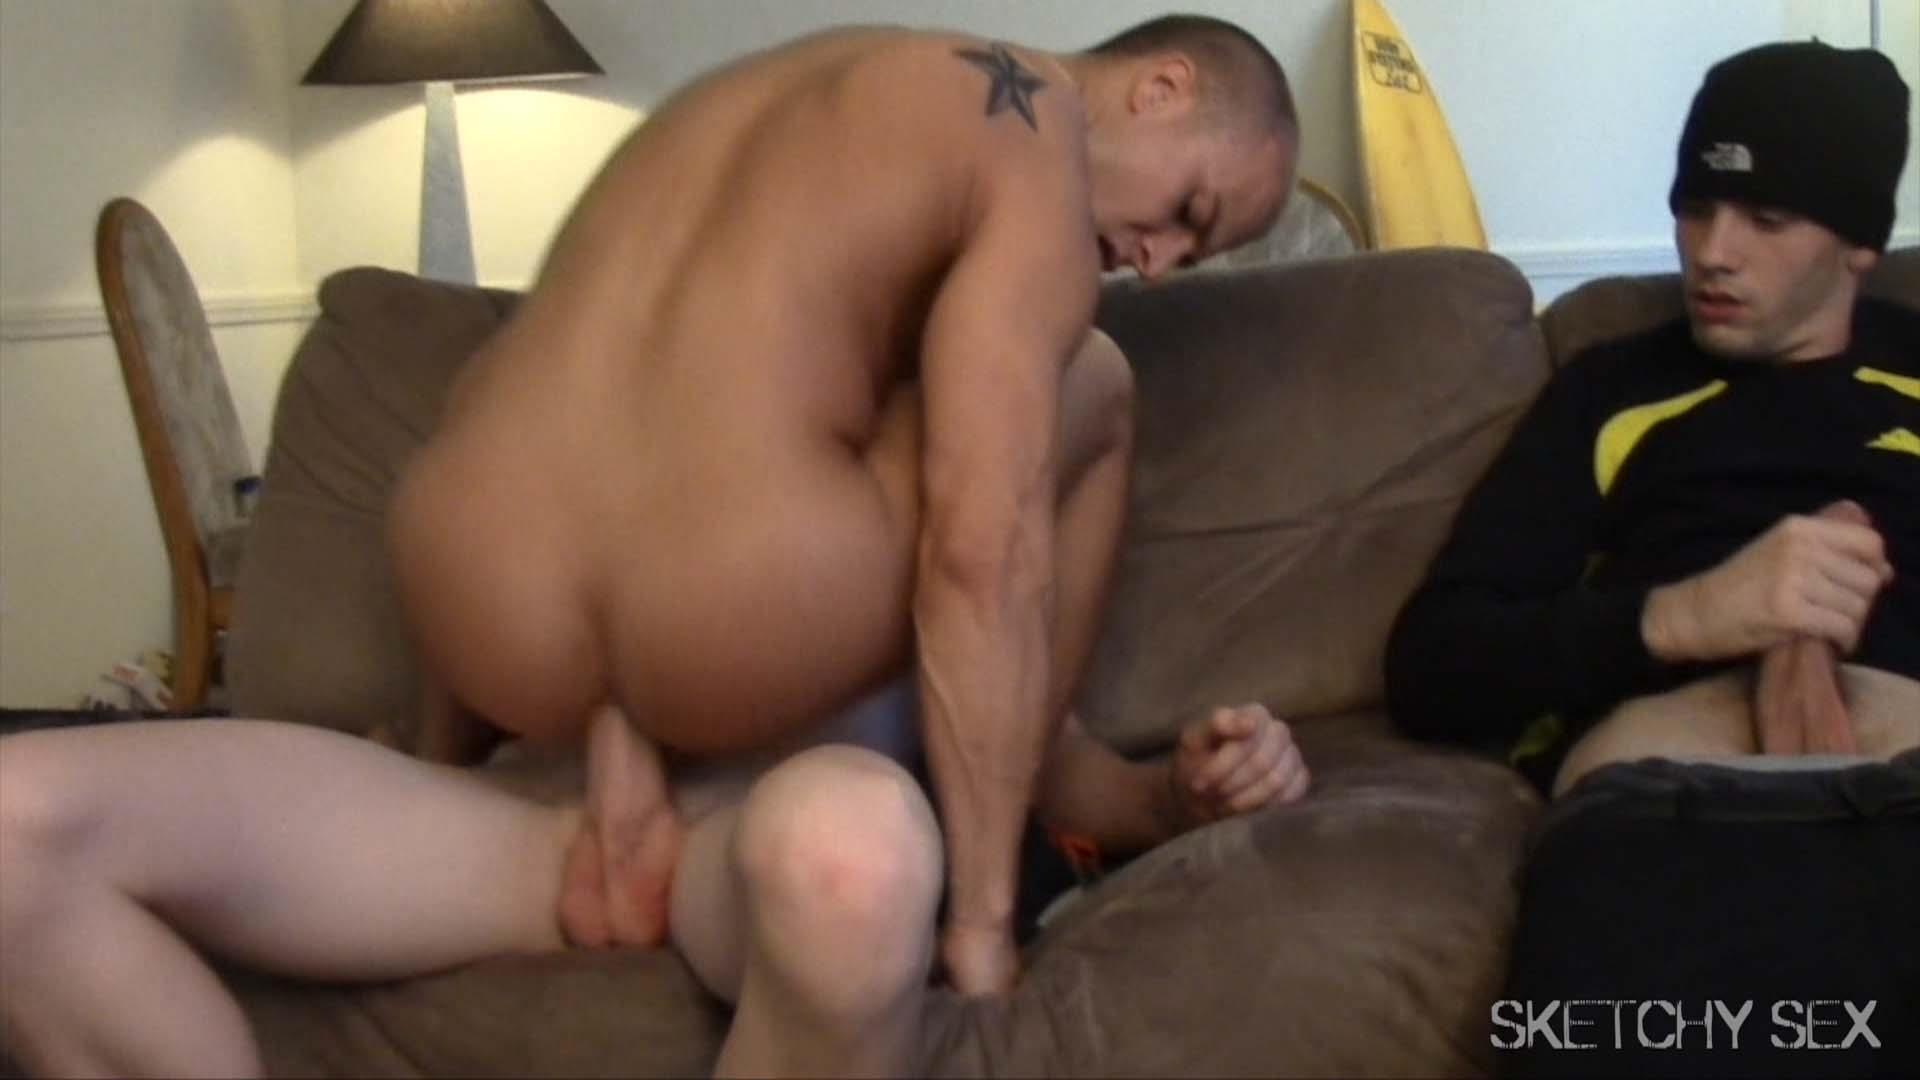 Shemale gay bukkake cum tube